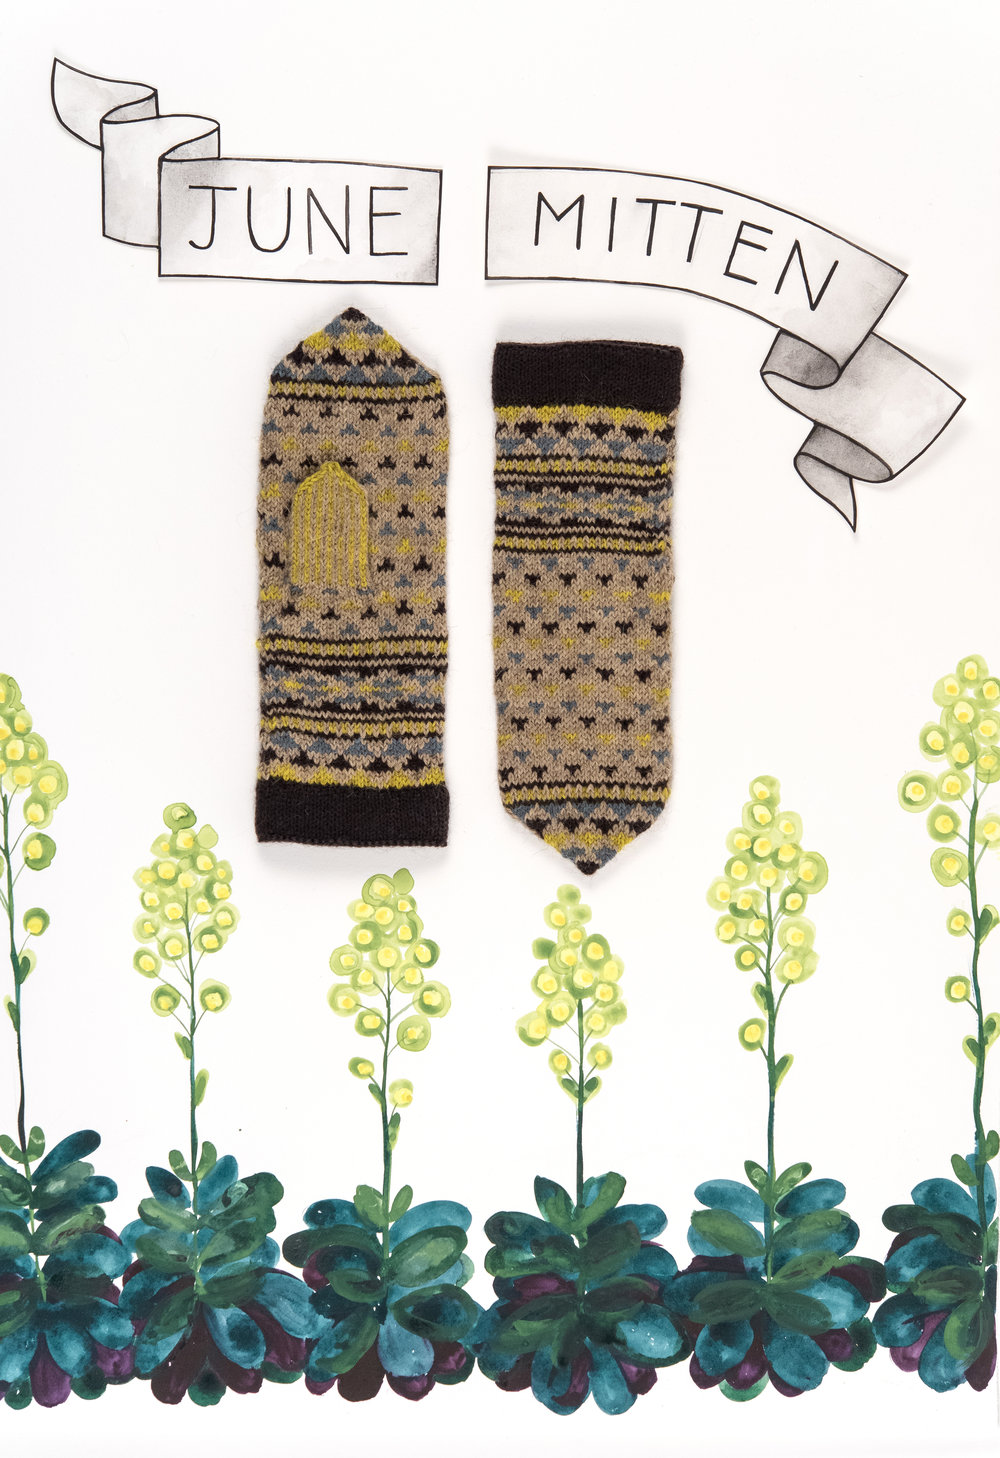 Kelbourne Woolens Year of Mittens June Mitten